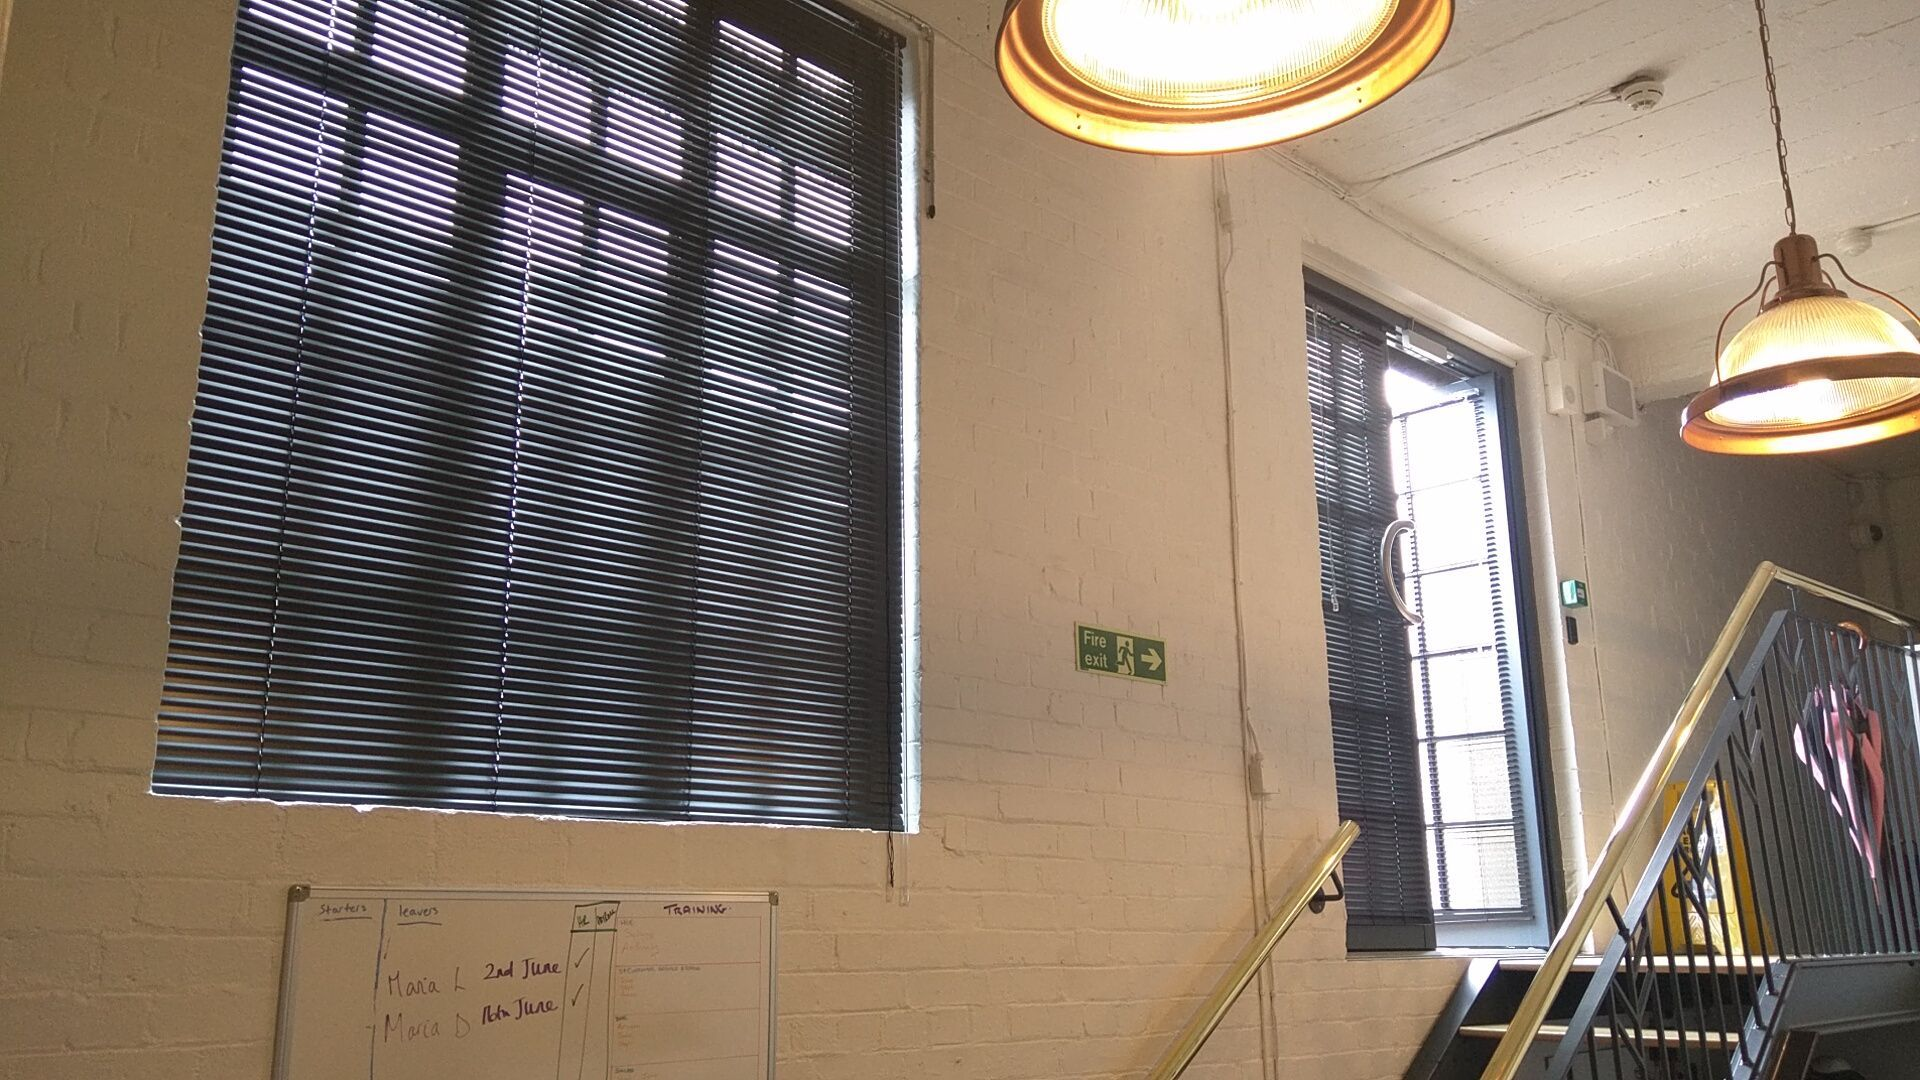 Metal venetian blinds we fitted for the prince edward theatre in